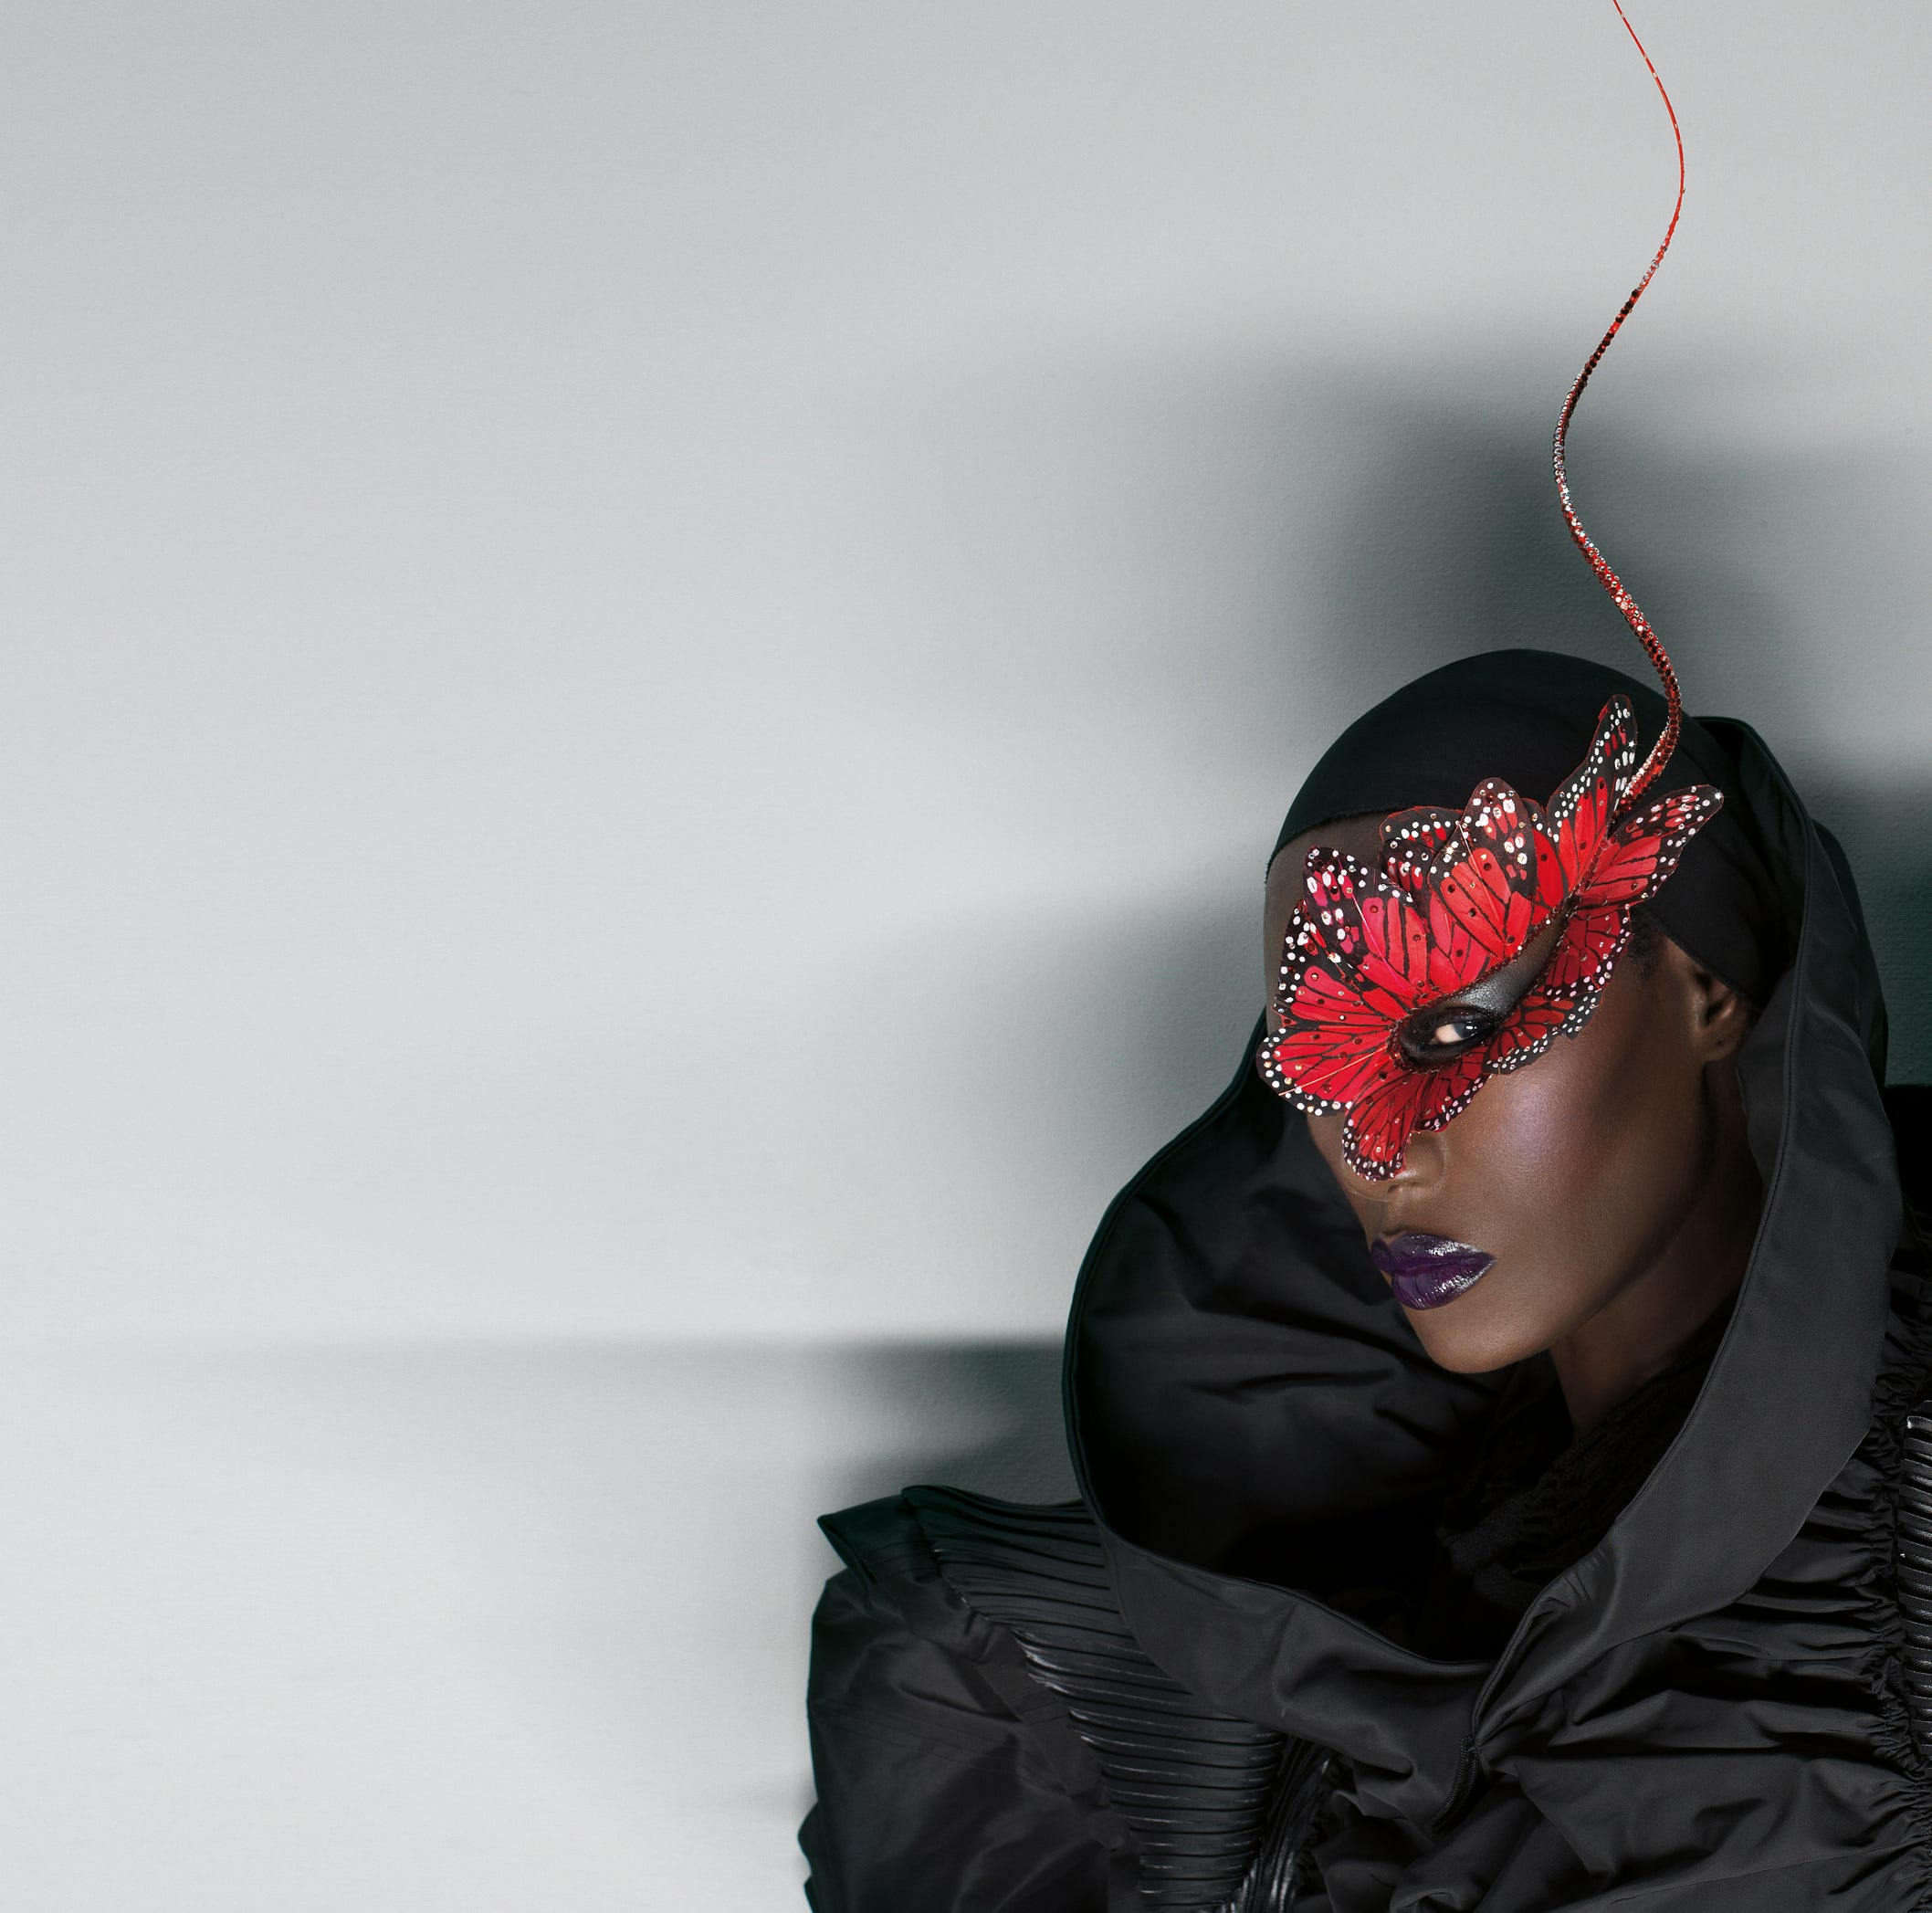 Grace Jones to play Masonic Temple in first Detroit show since 1990